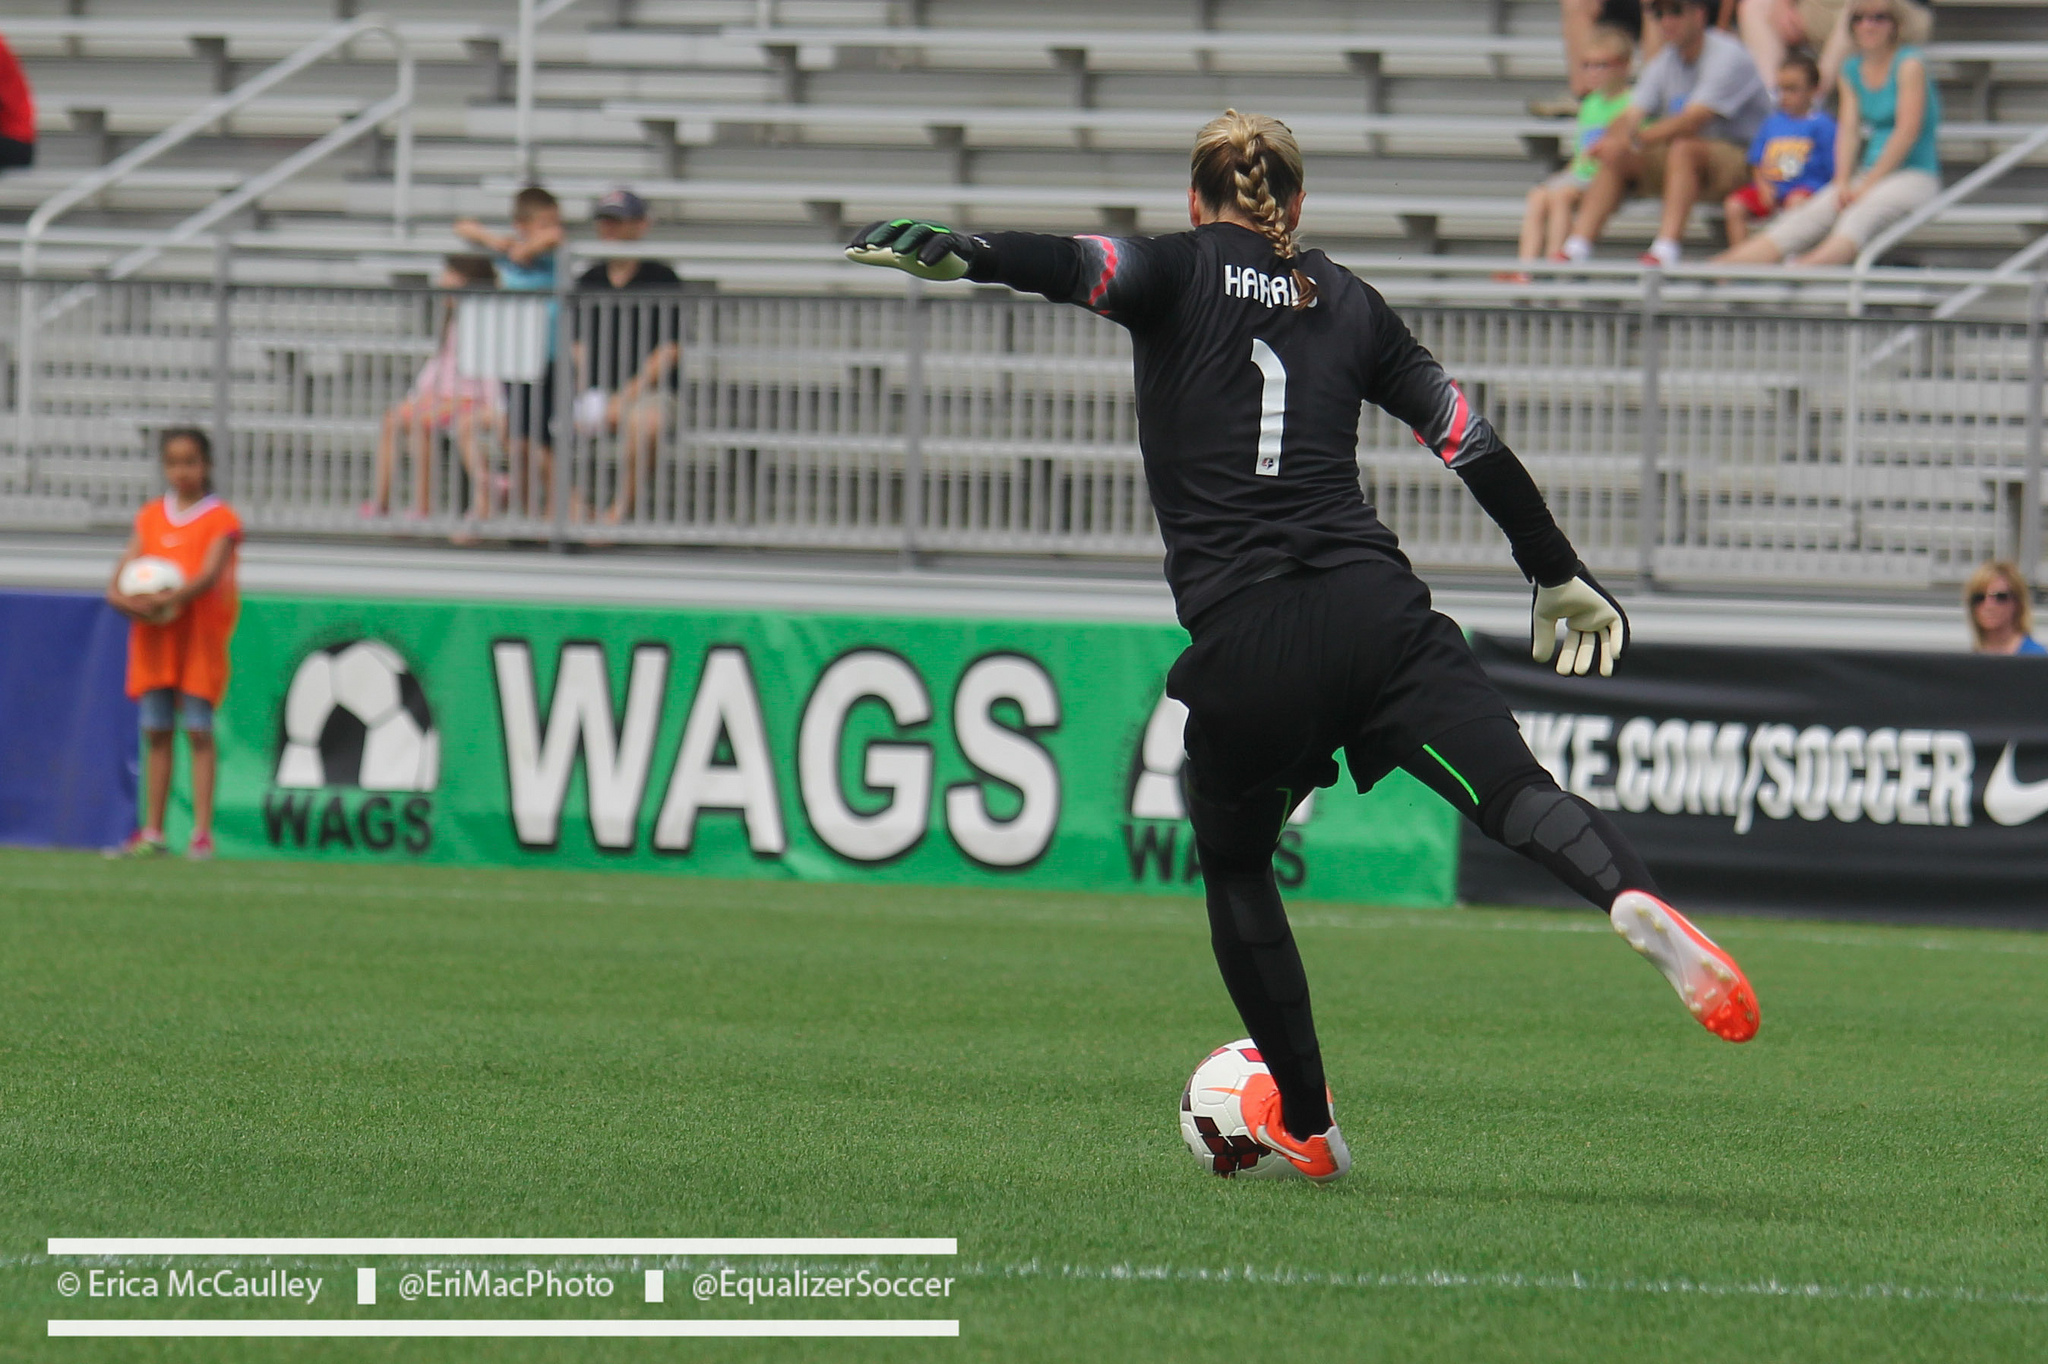 Ashlyn Harris says she is happy to be home in Orlando. (Photo Copyright Erica McCaulley for The Equalizer)